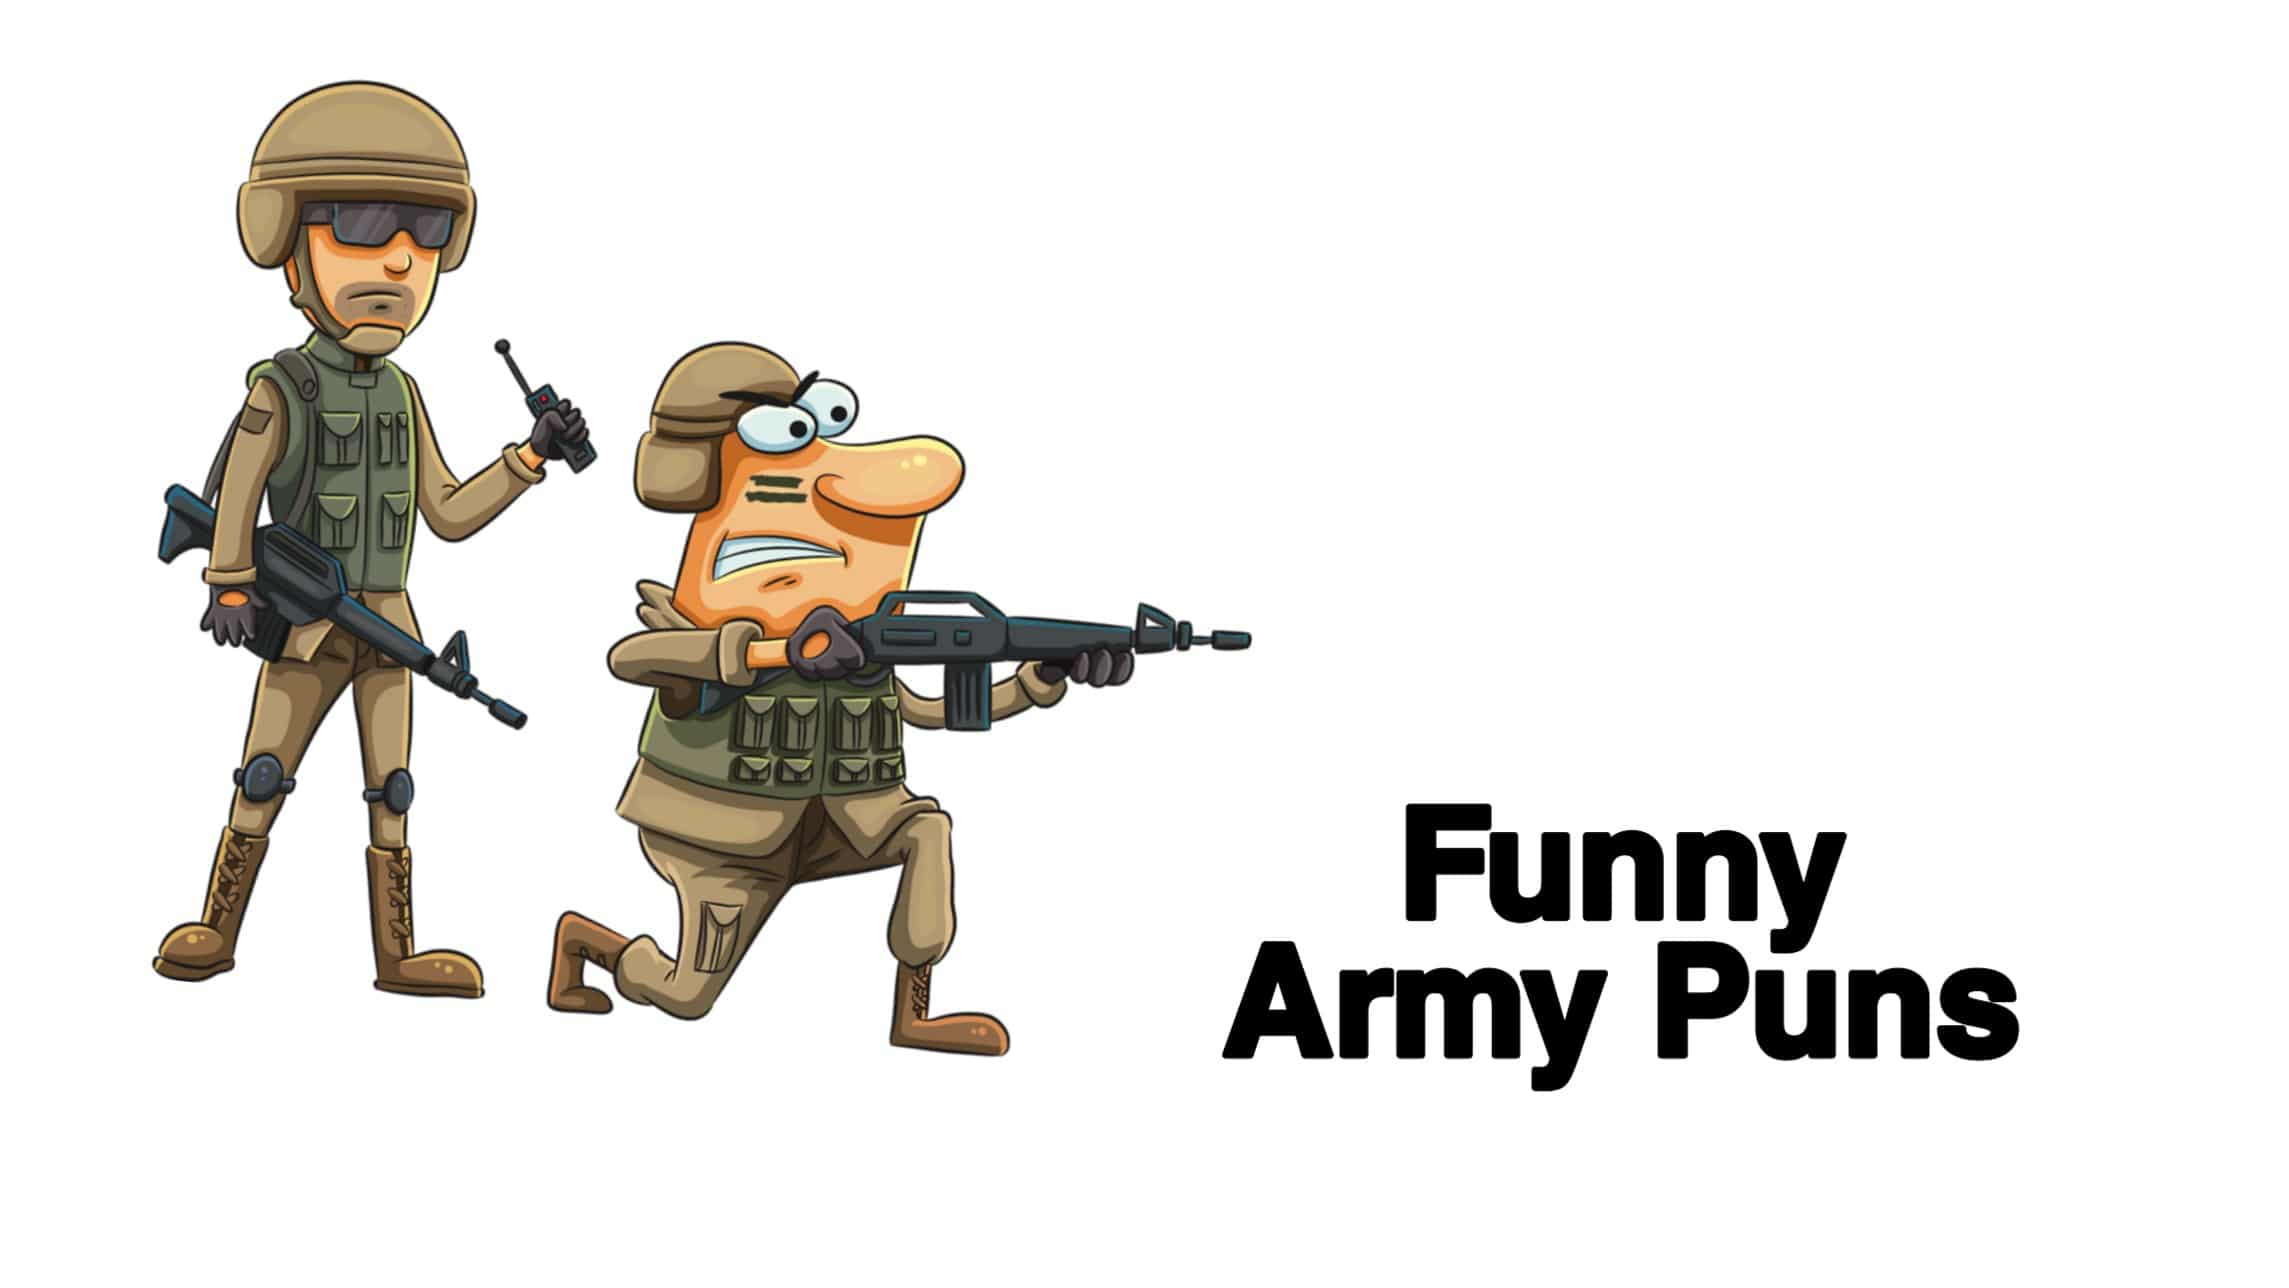 hilarious army puns to make you laugh